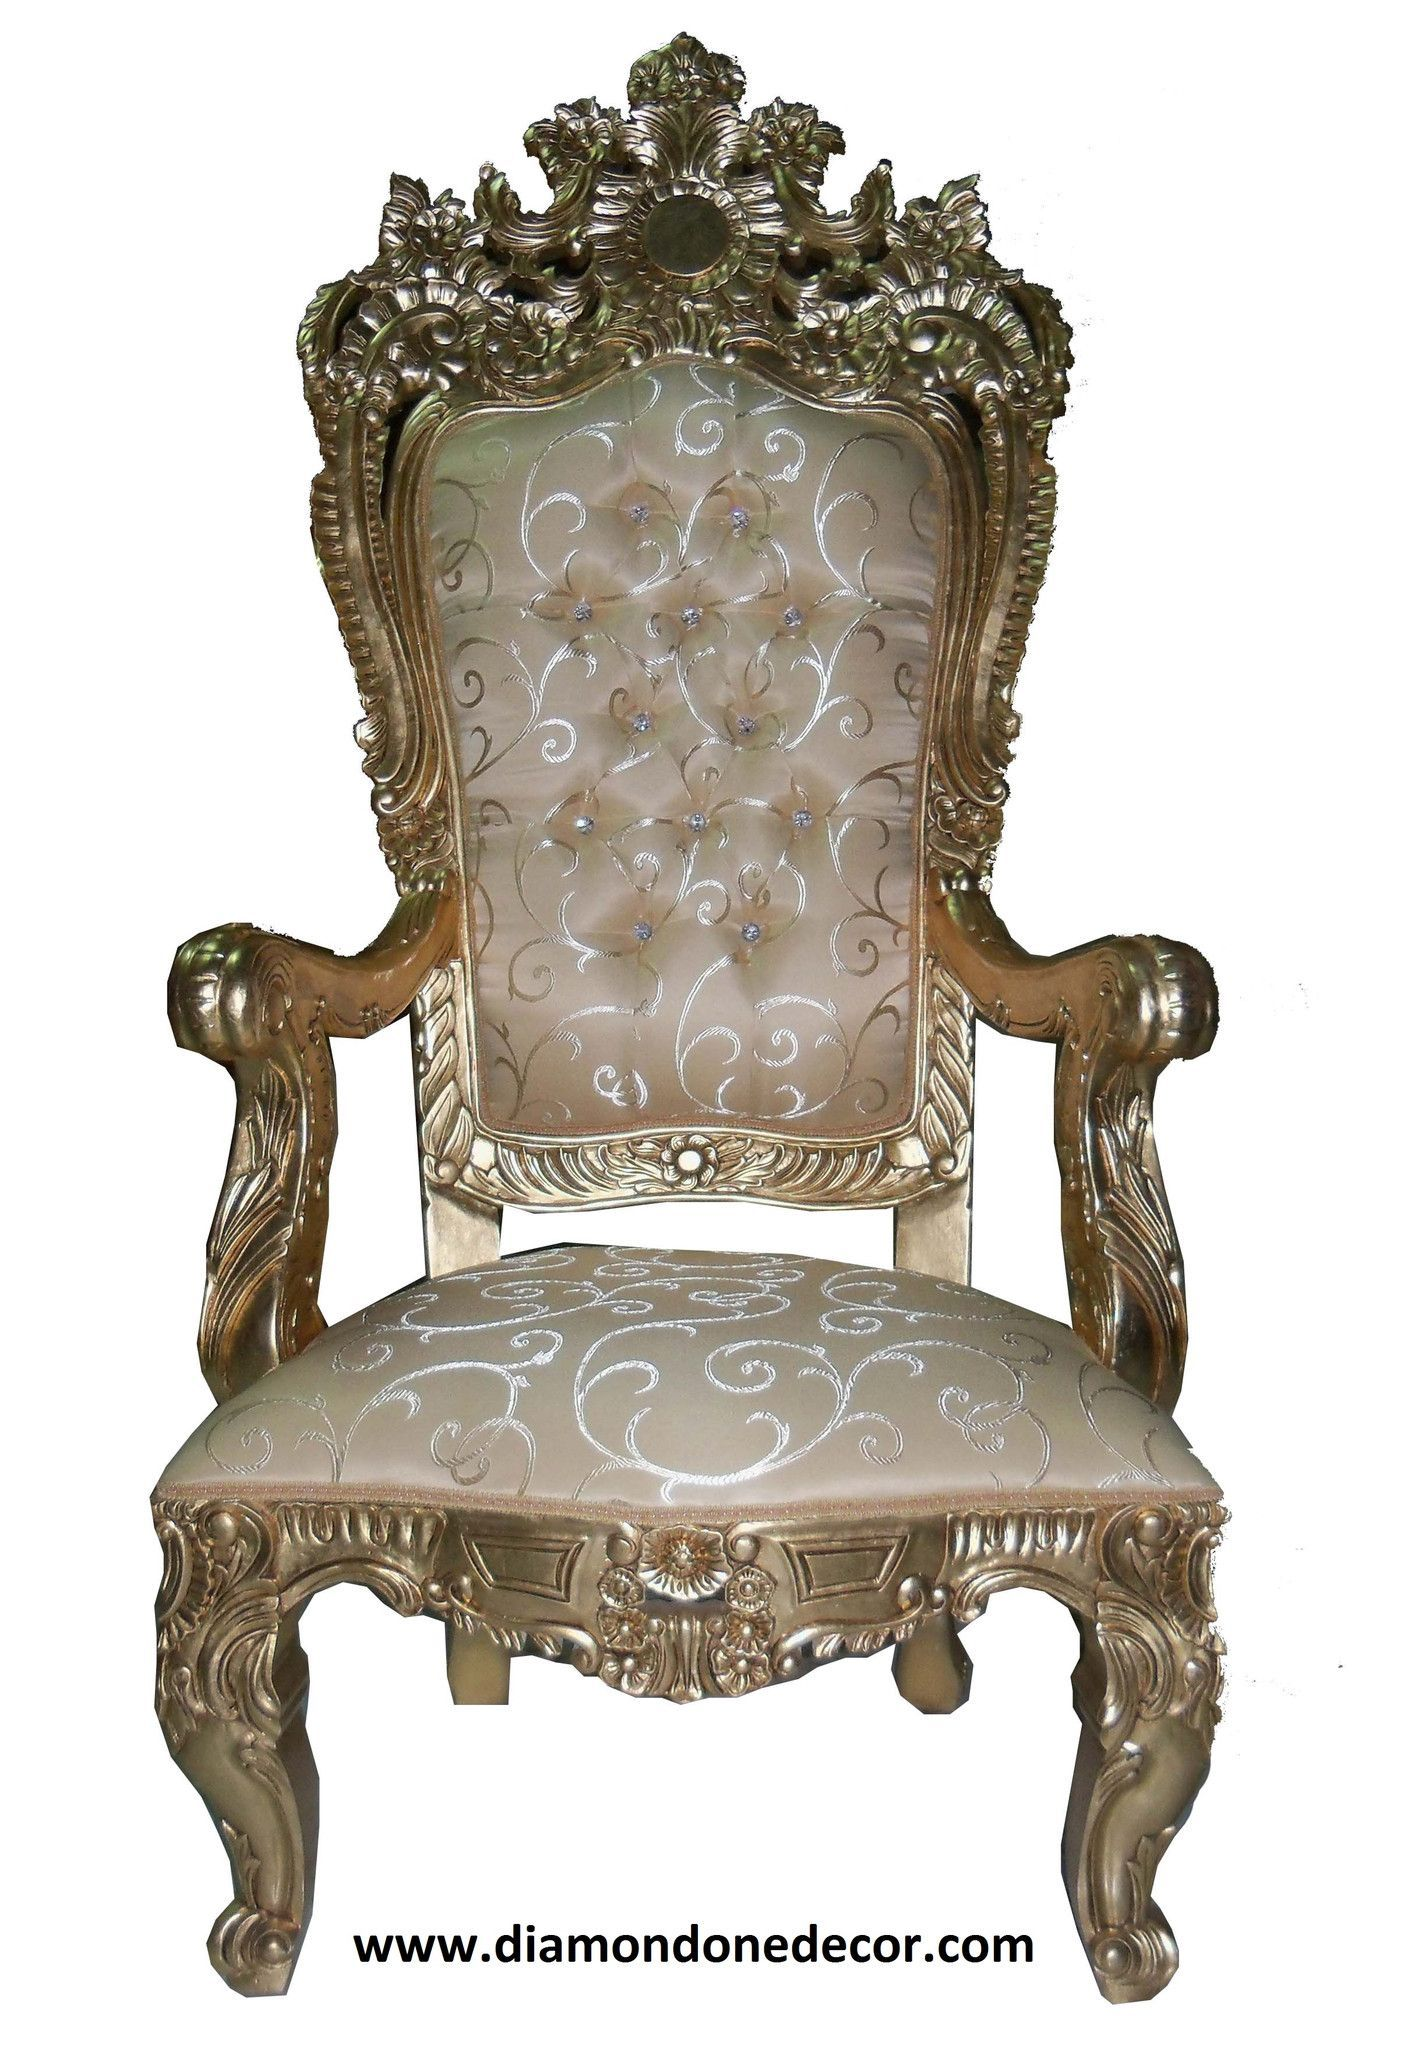 black velvet throne chair wooden frame beach chairs exquisite mahogany hand carved louis xvi baroque french